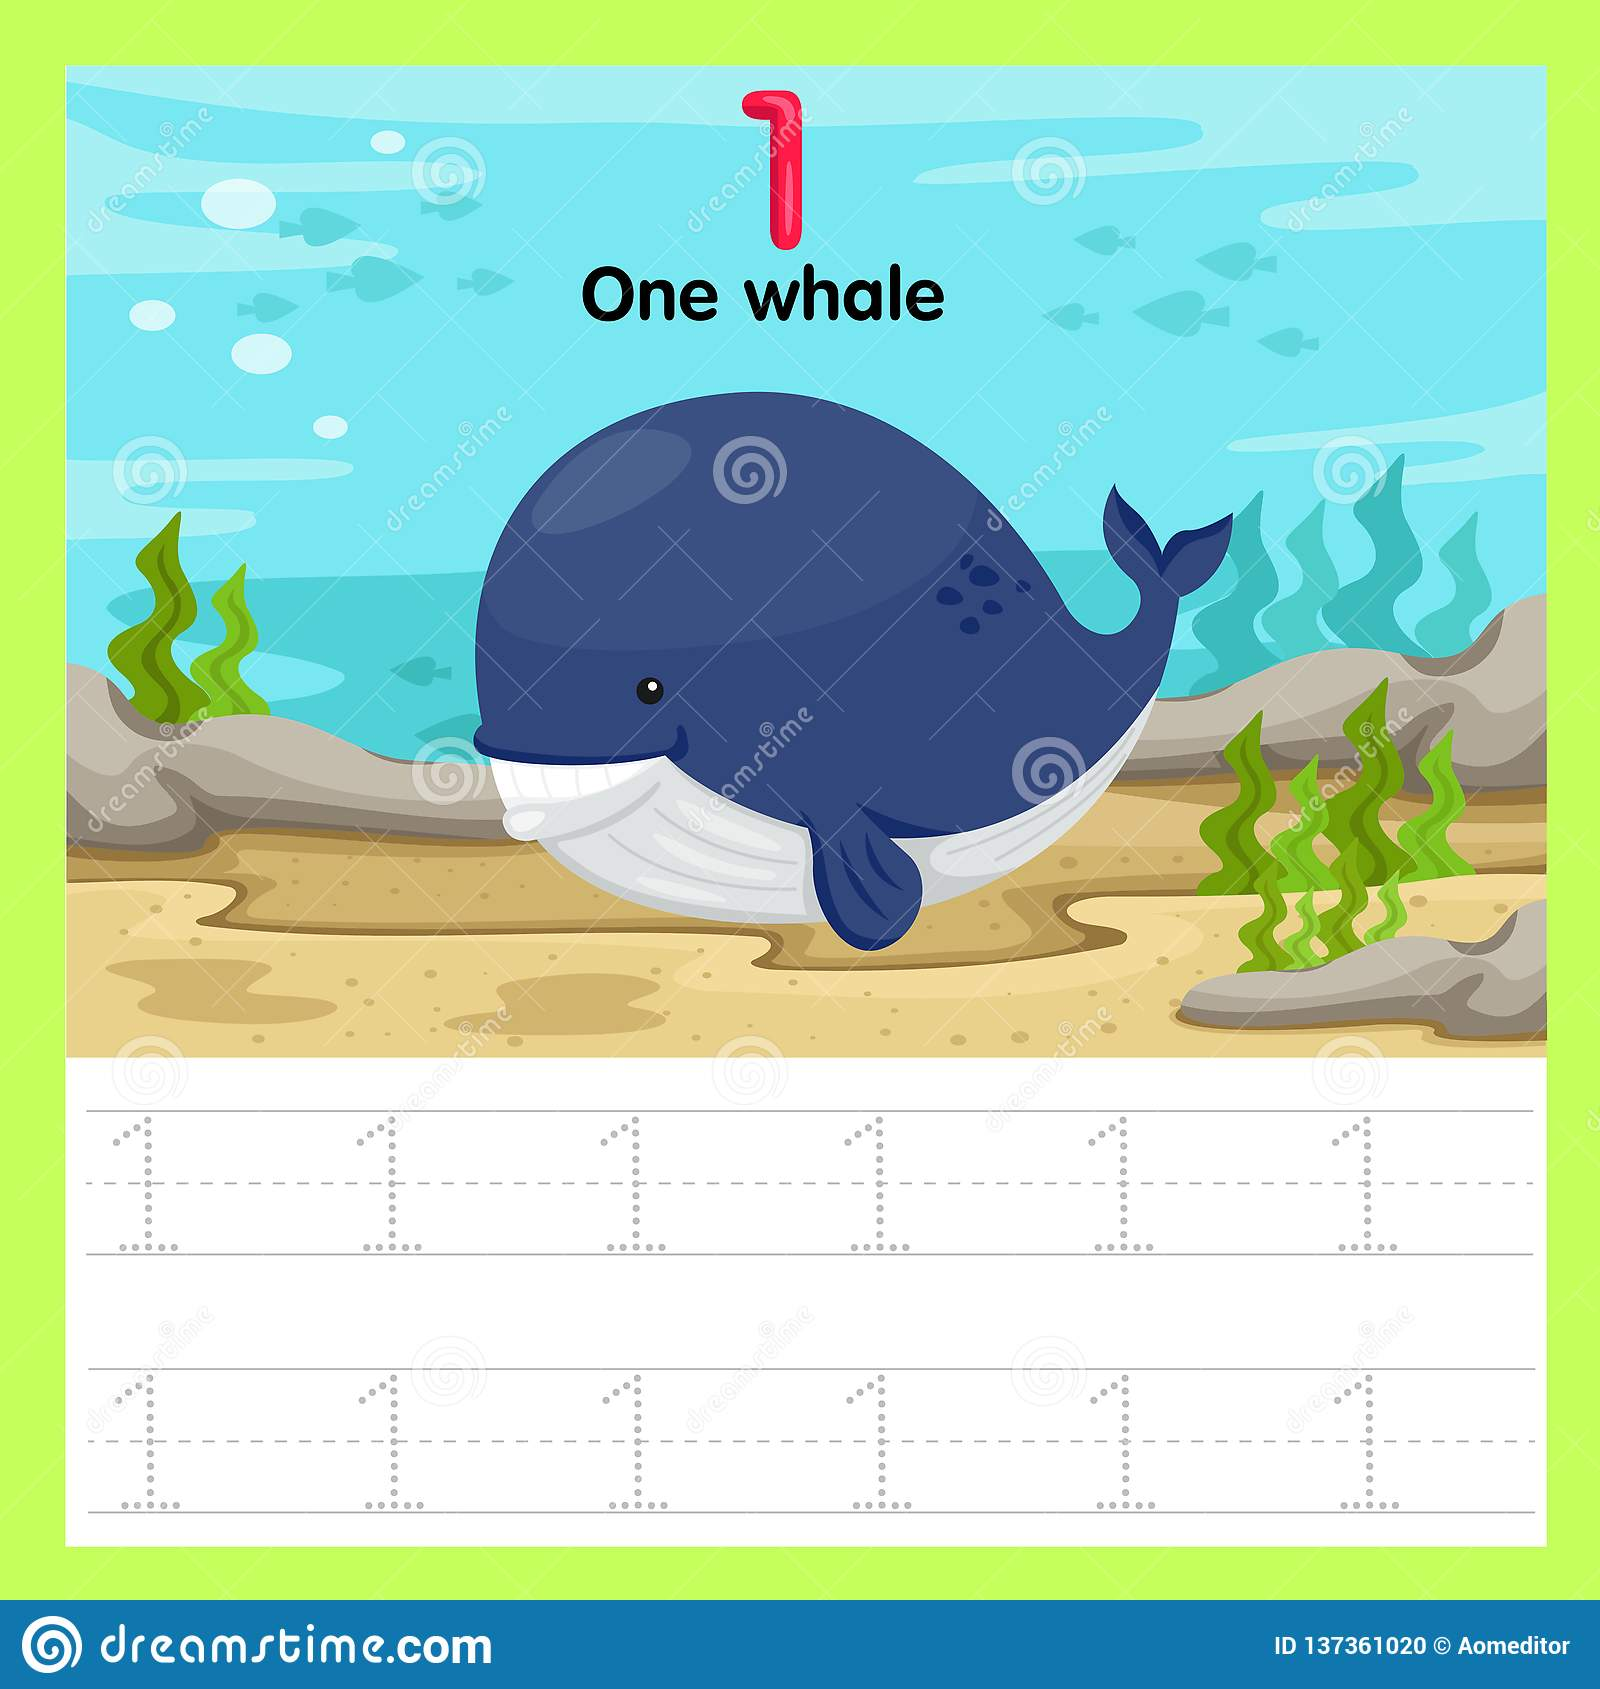 Illustrator Of Worksheet One Whale Stock Vector